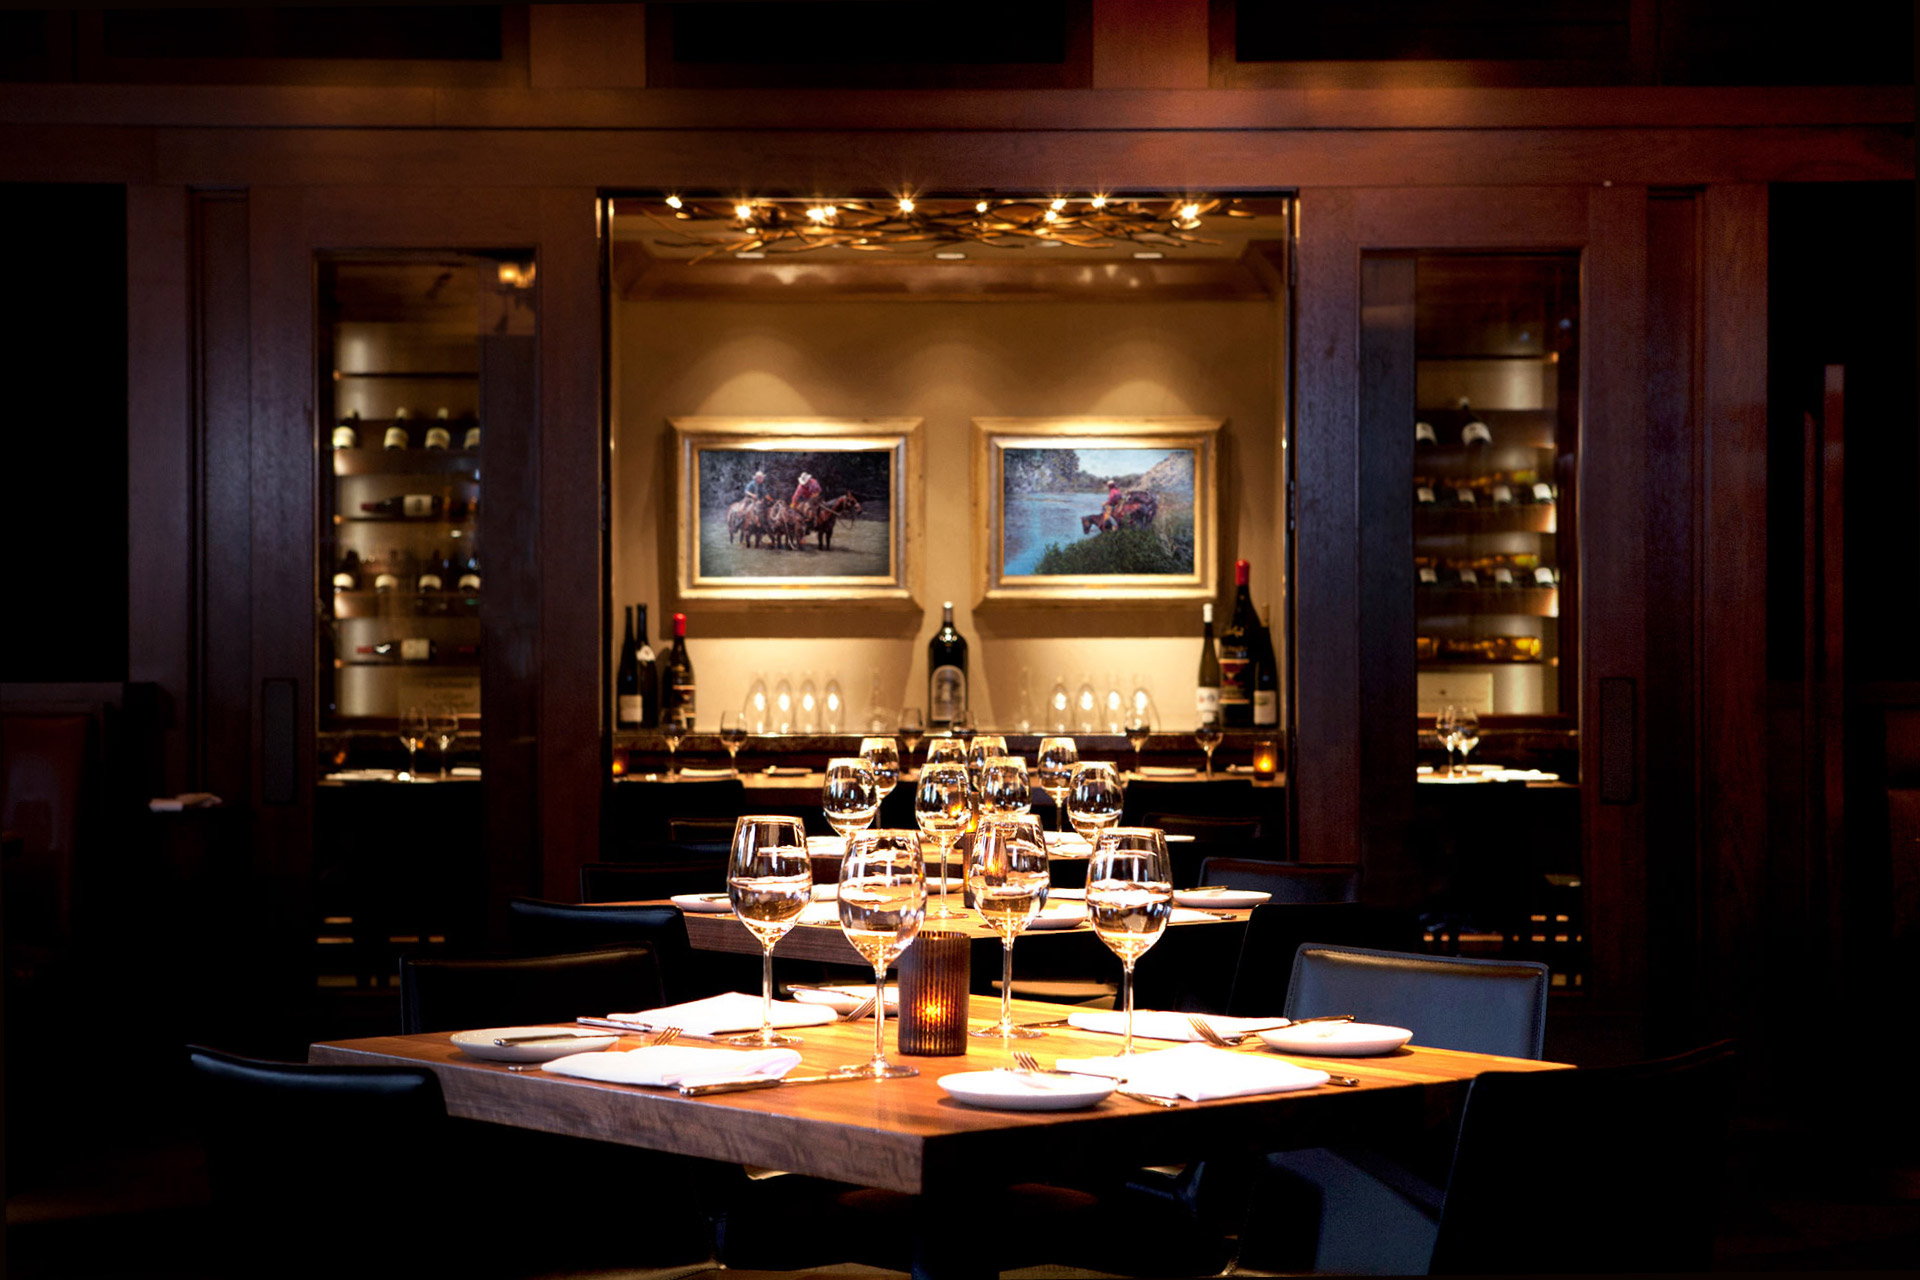 Wood-paneled dining room and gleaming table with glasses of wine selected by Executive Chef and Master Sommelier, Michael Rossi.